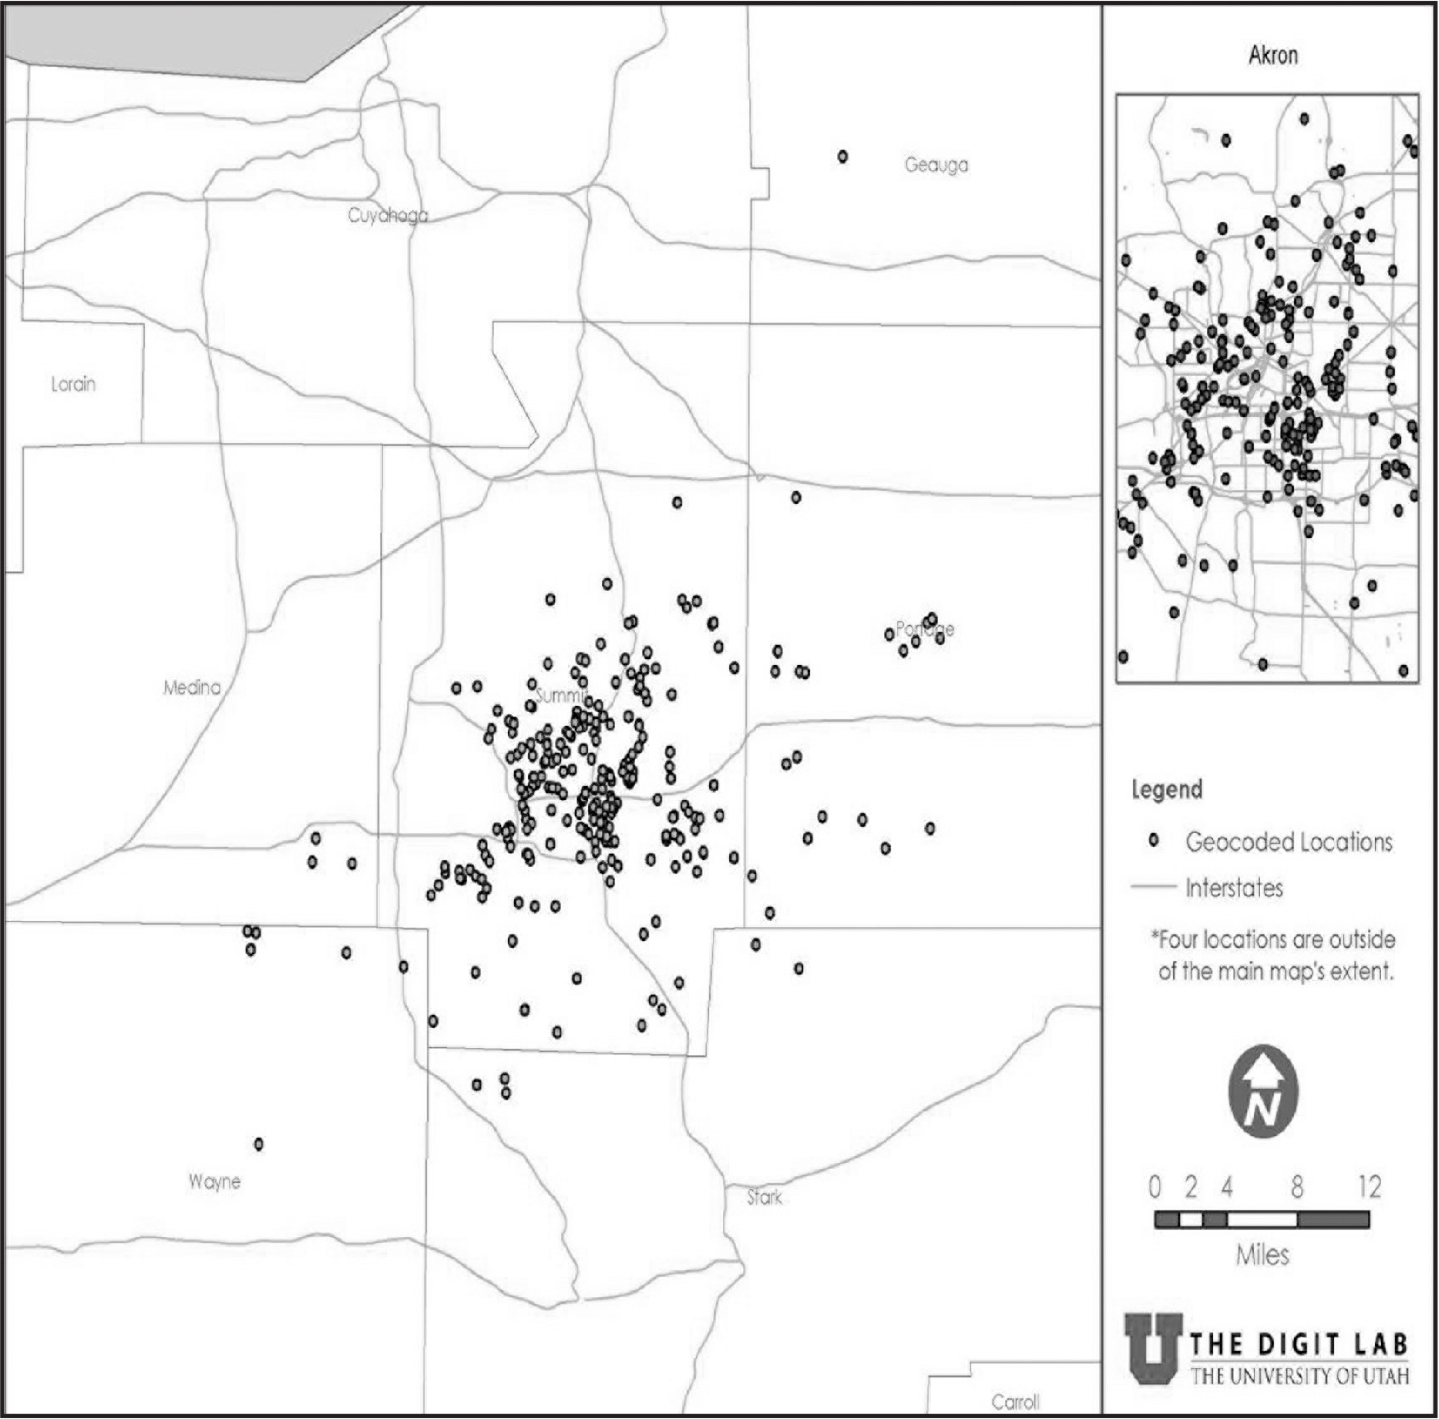 geocoding to manage missing data in a secondary analysis of community